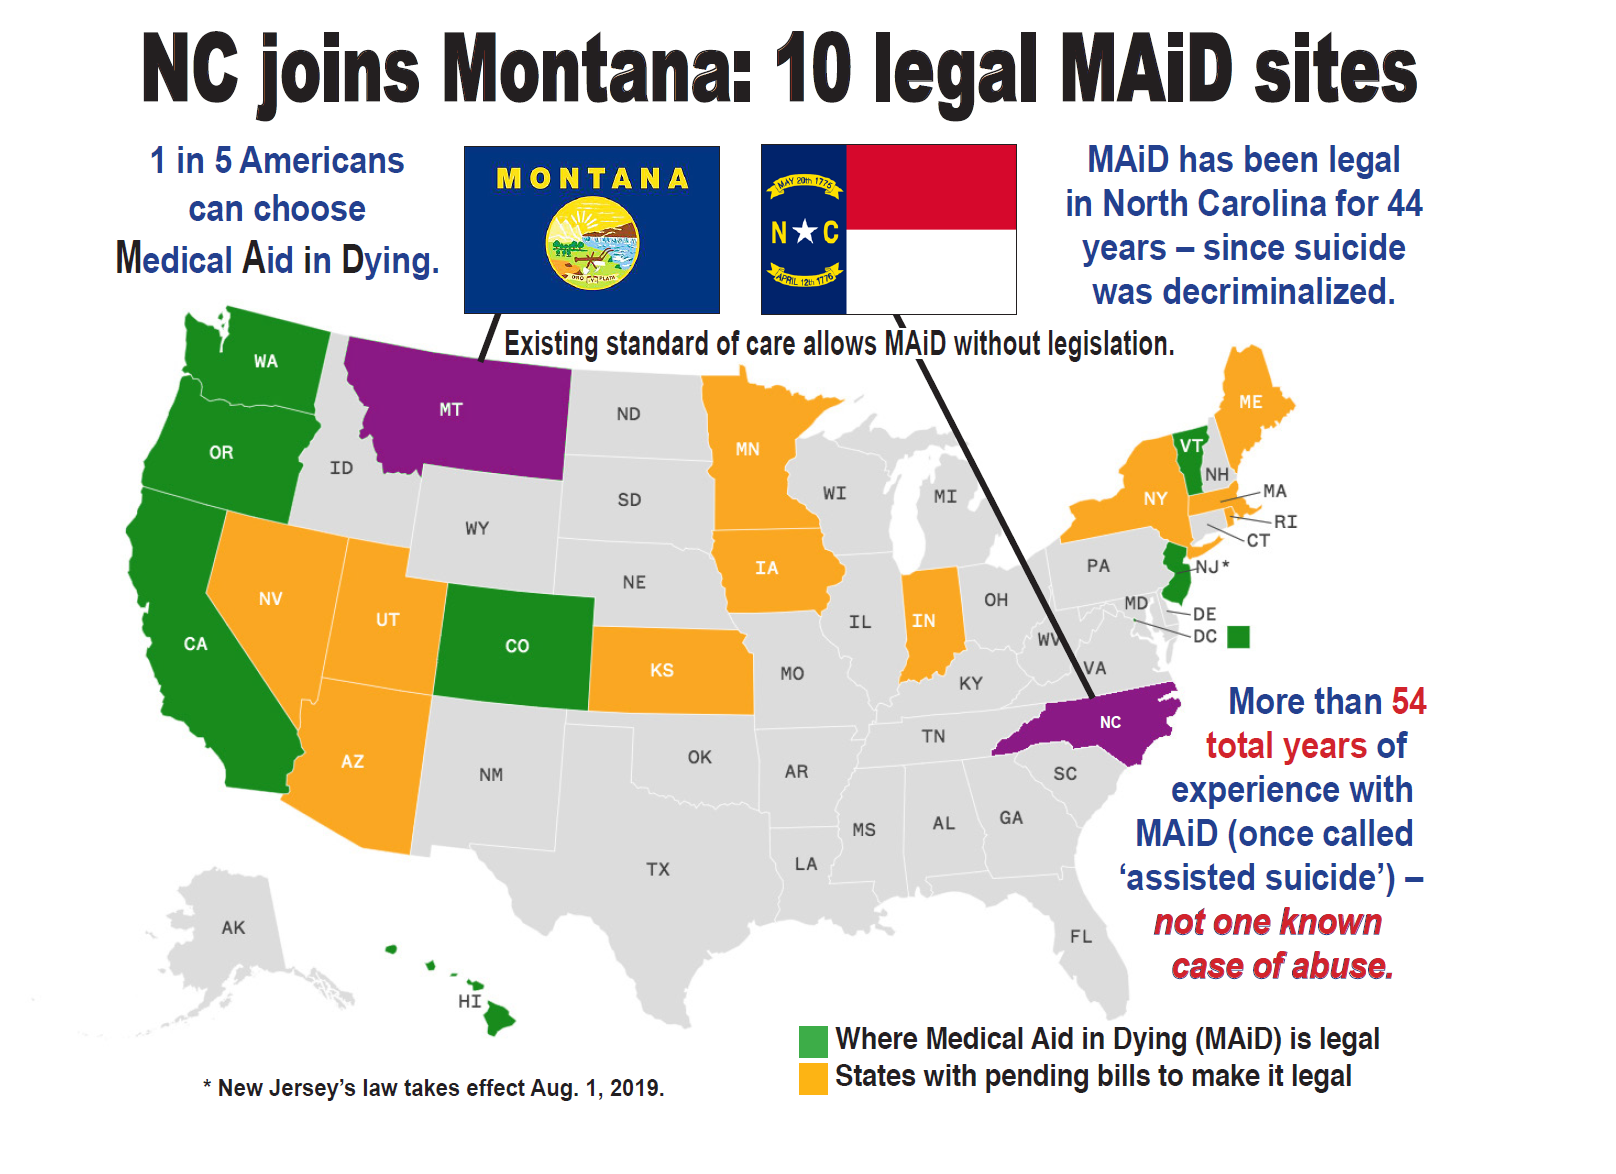 NC joins Montana: 10 legal MAiD sites